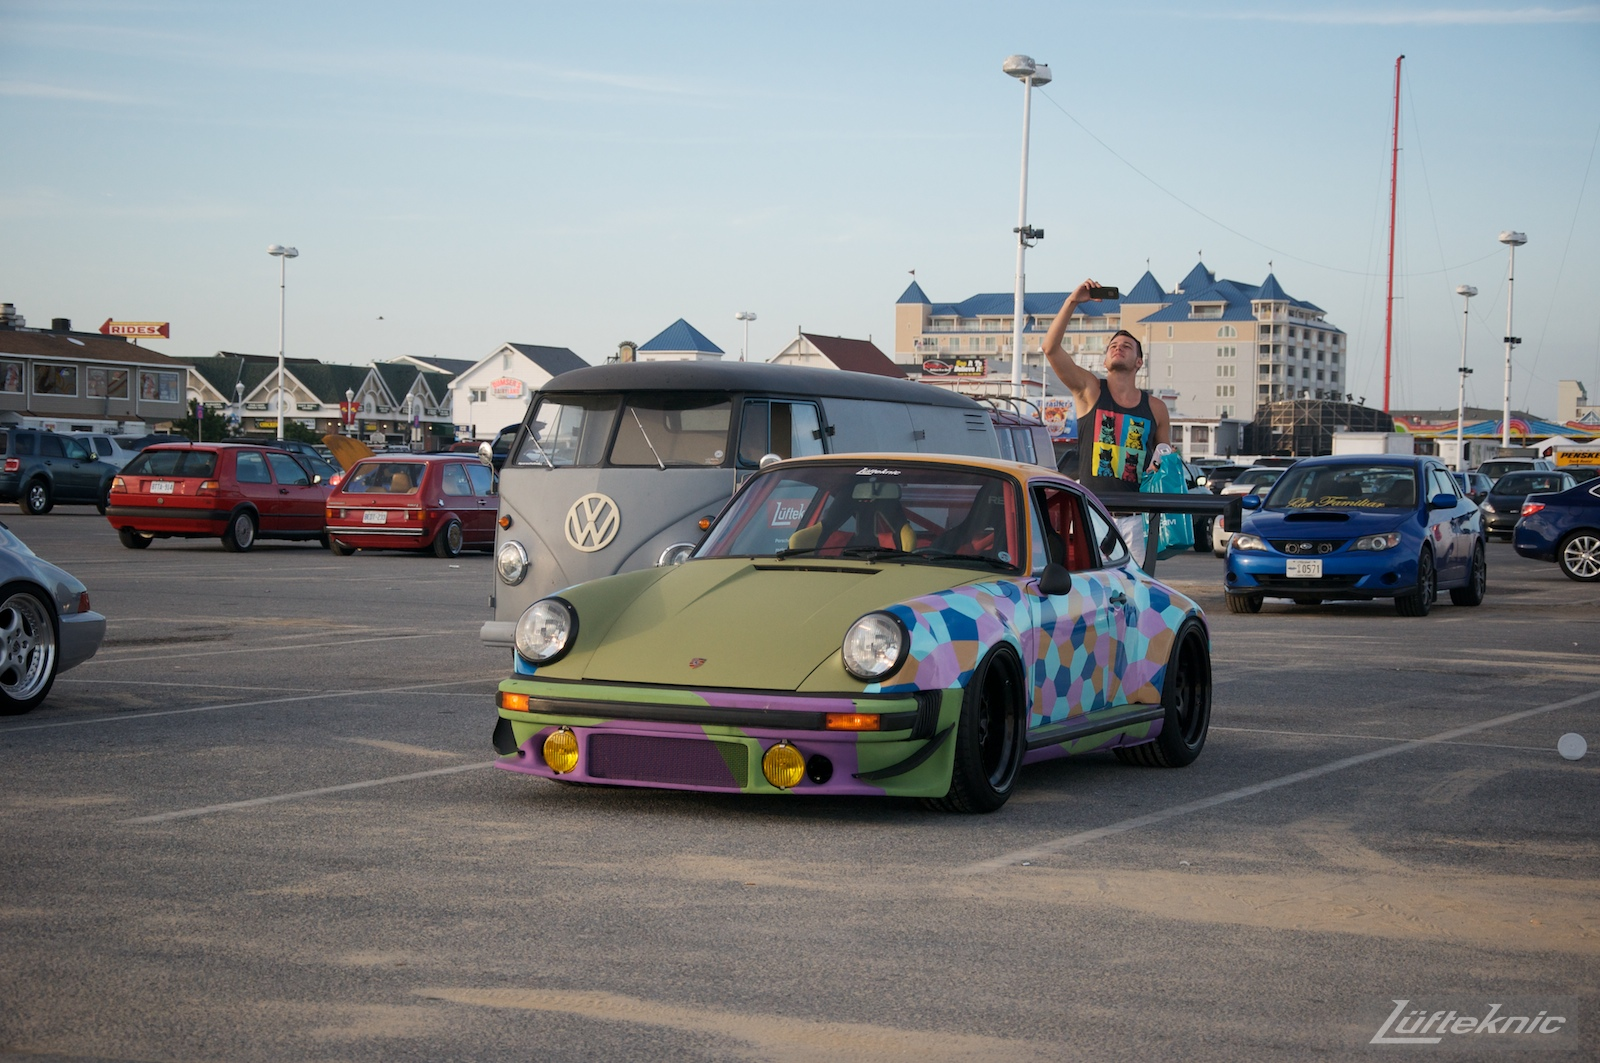 The Lüfteknic #projectstuka Porsche 930 Turbo and porschebus pose at the inlet parking lot for pictures.